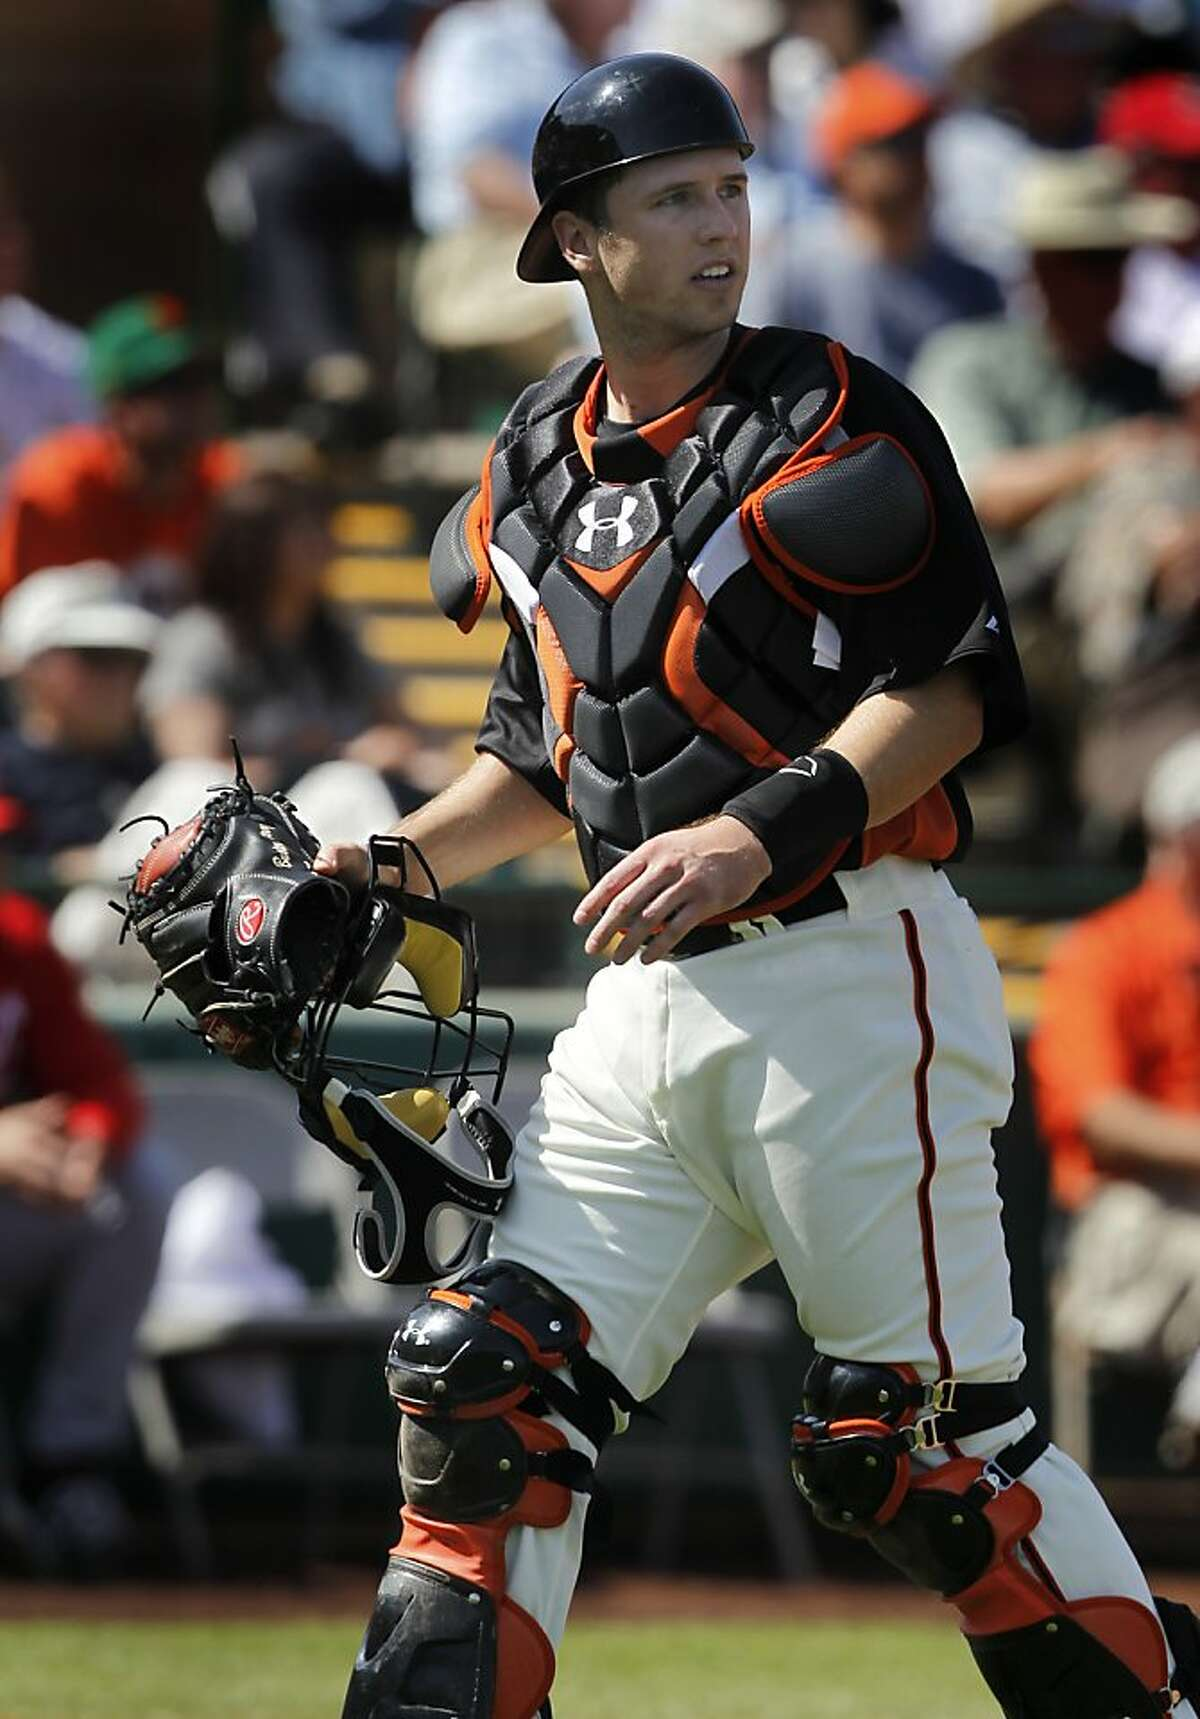 Buster Posey to undergo season ending hip surgery on Monday - MLB Daily Dish